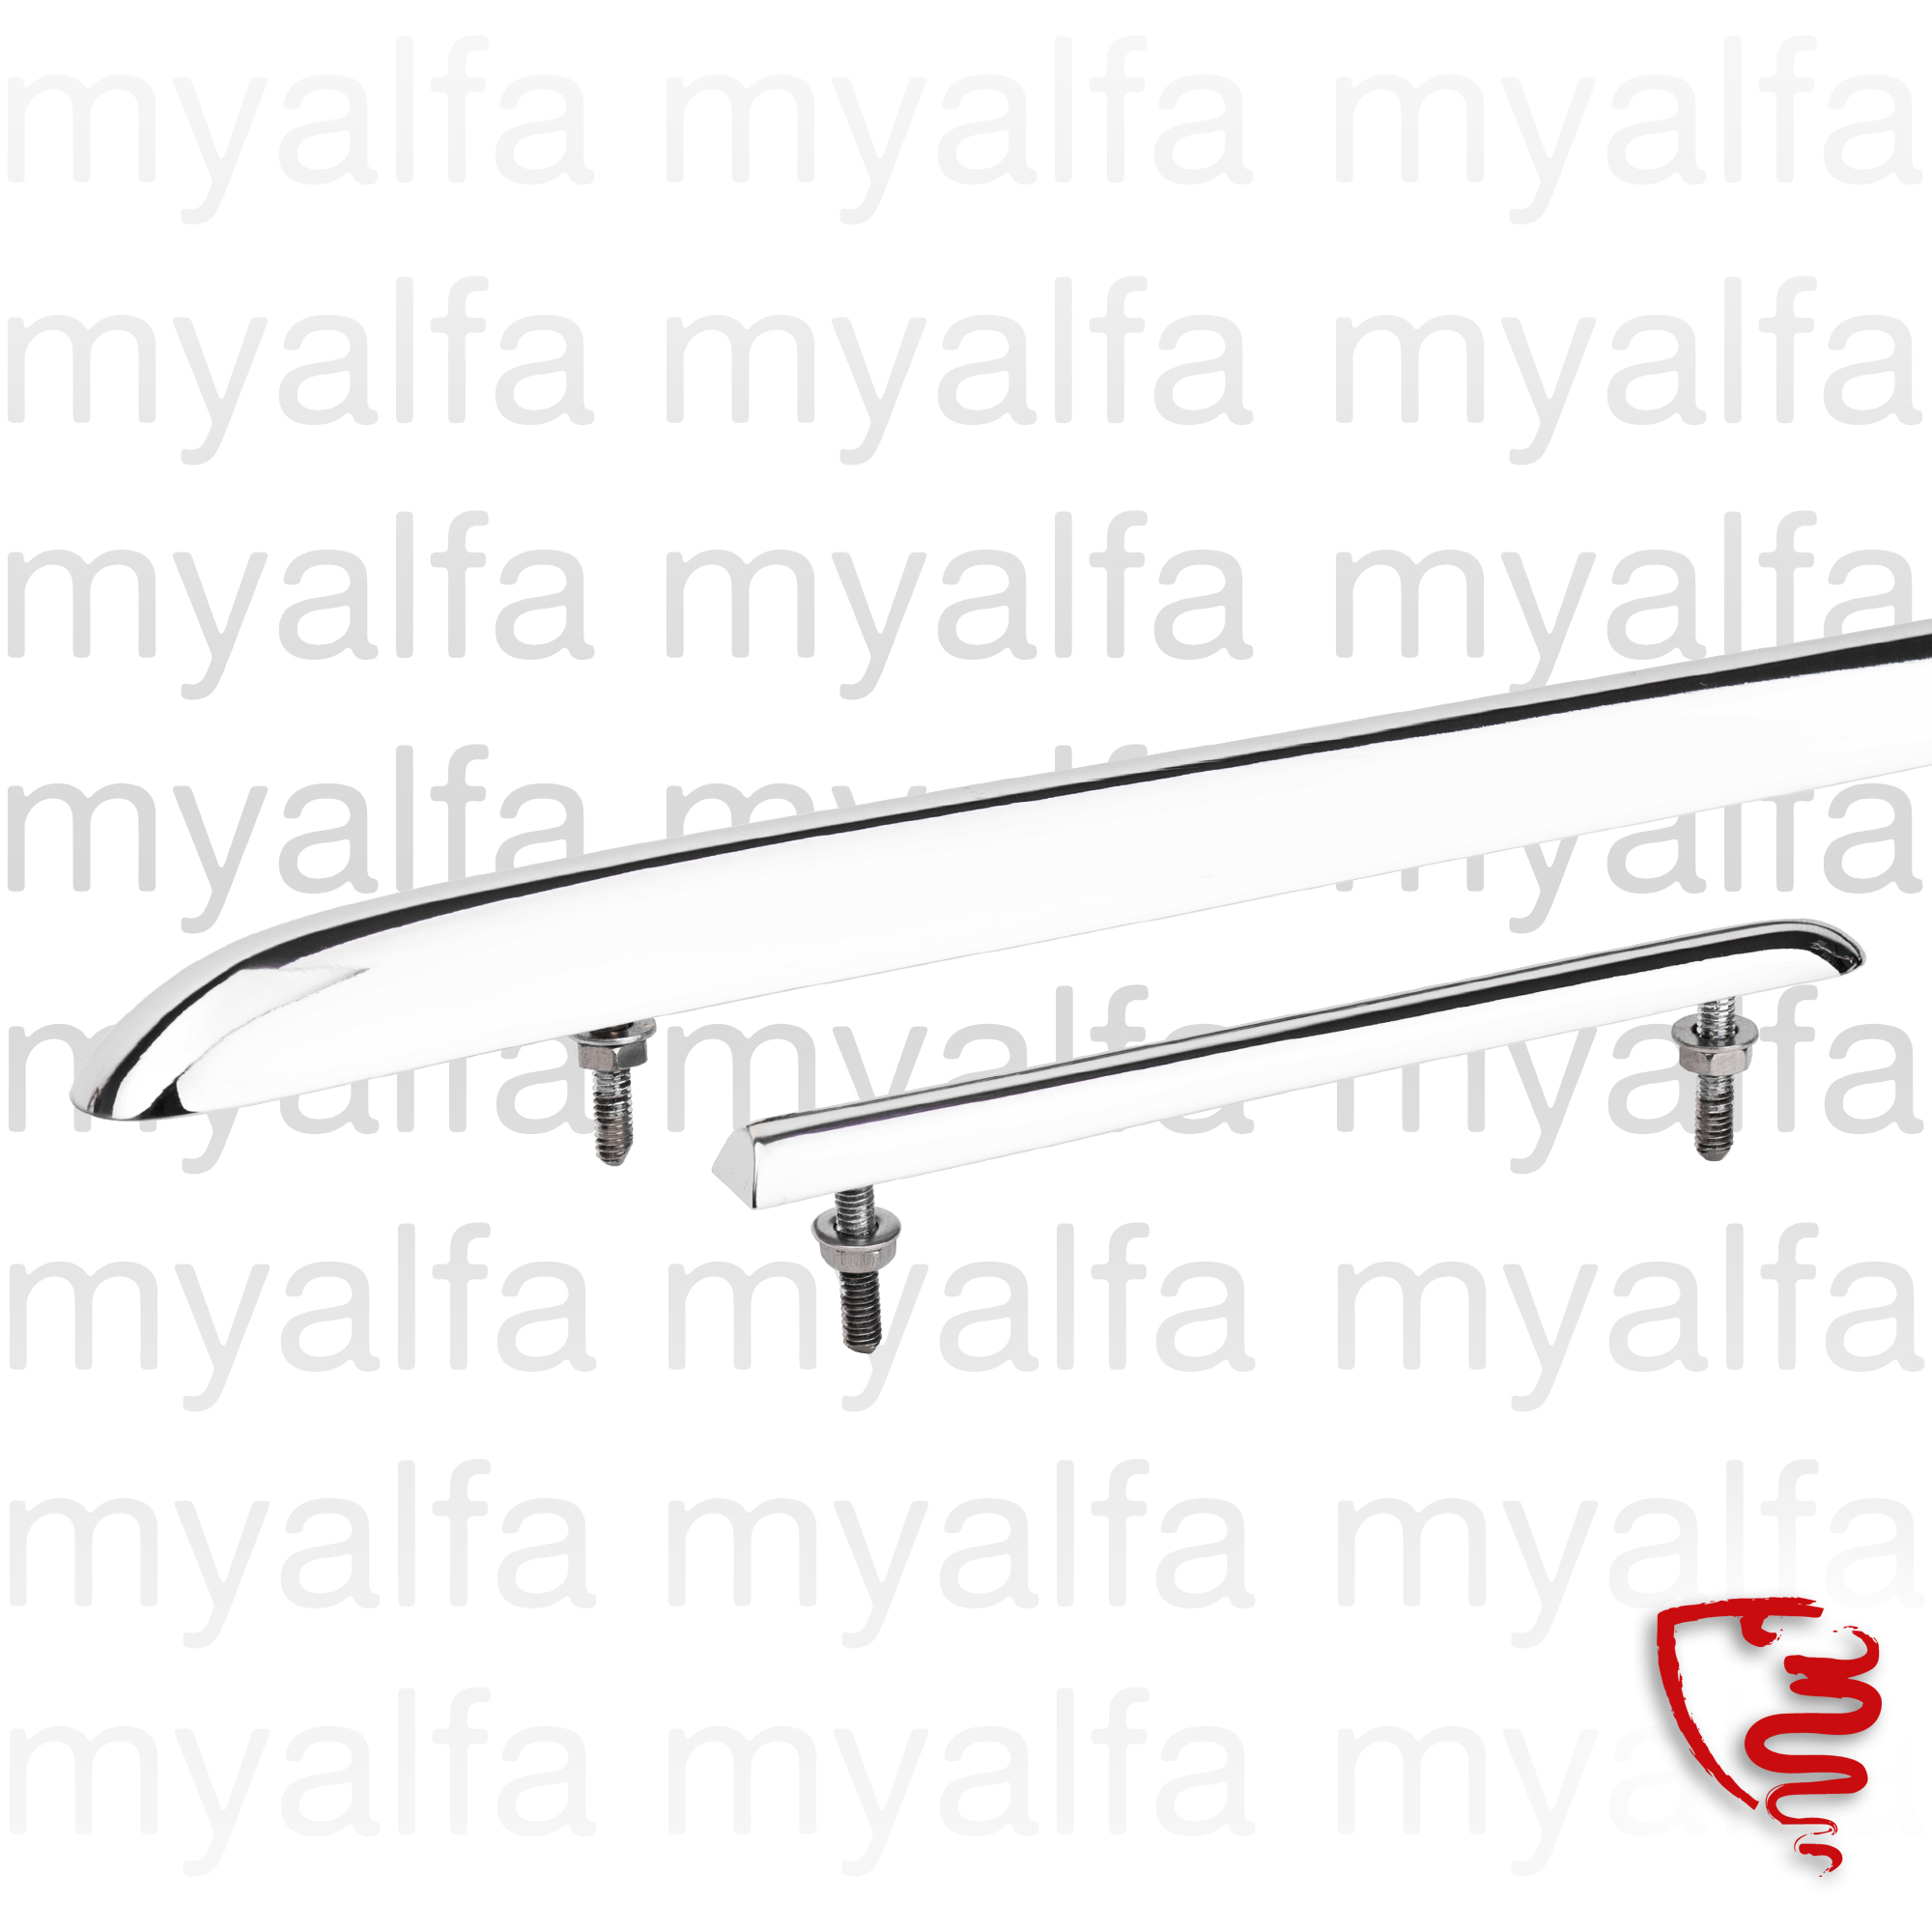 Crimp bonnet Giulietta Spider 1300 (750/101) for 750/101, Spider, Body parts, Chrome Parts, Front